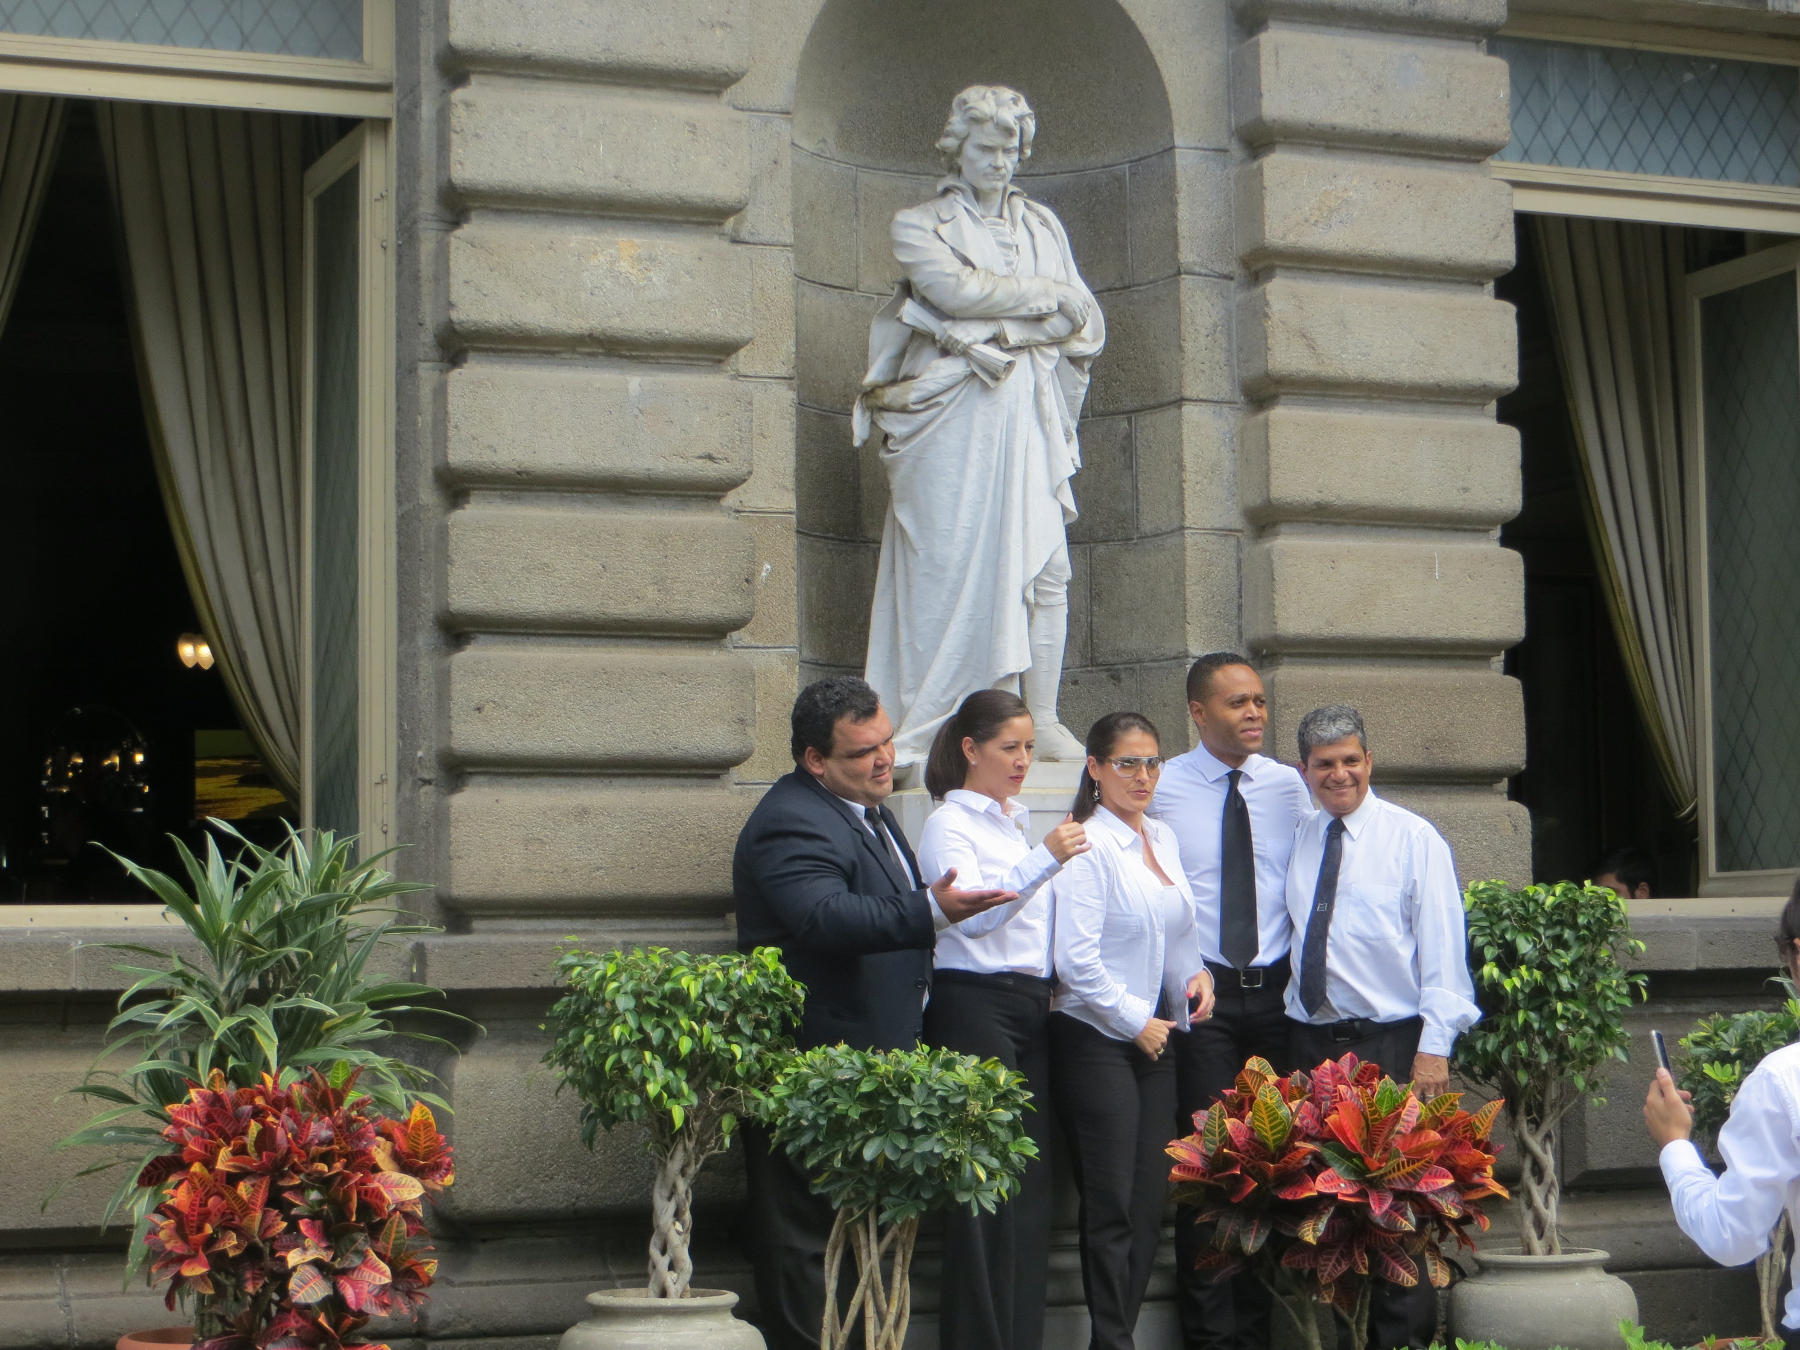 Members of the Costa Rican National Symphony Orchestra pose in front of a statue of Ludwig von Beethoven.